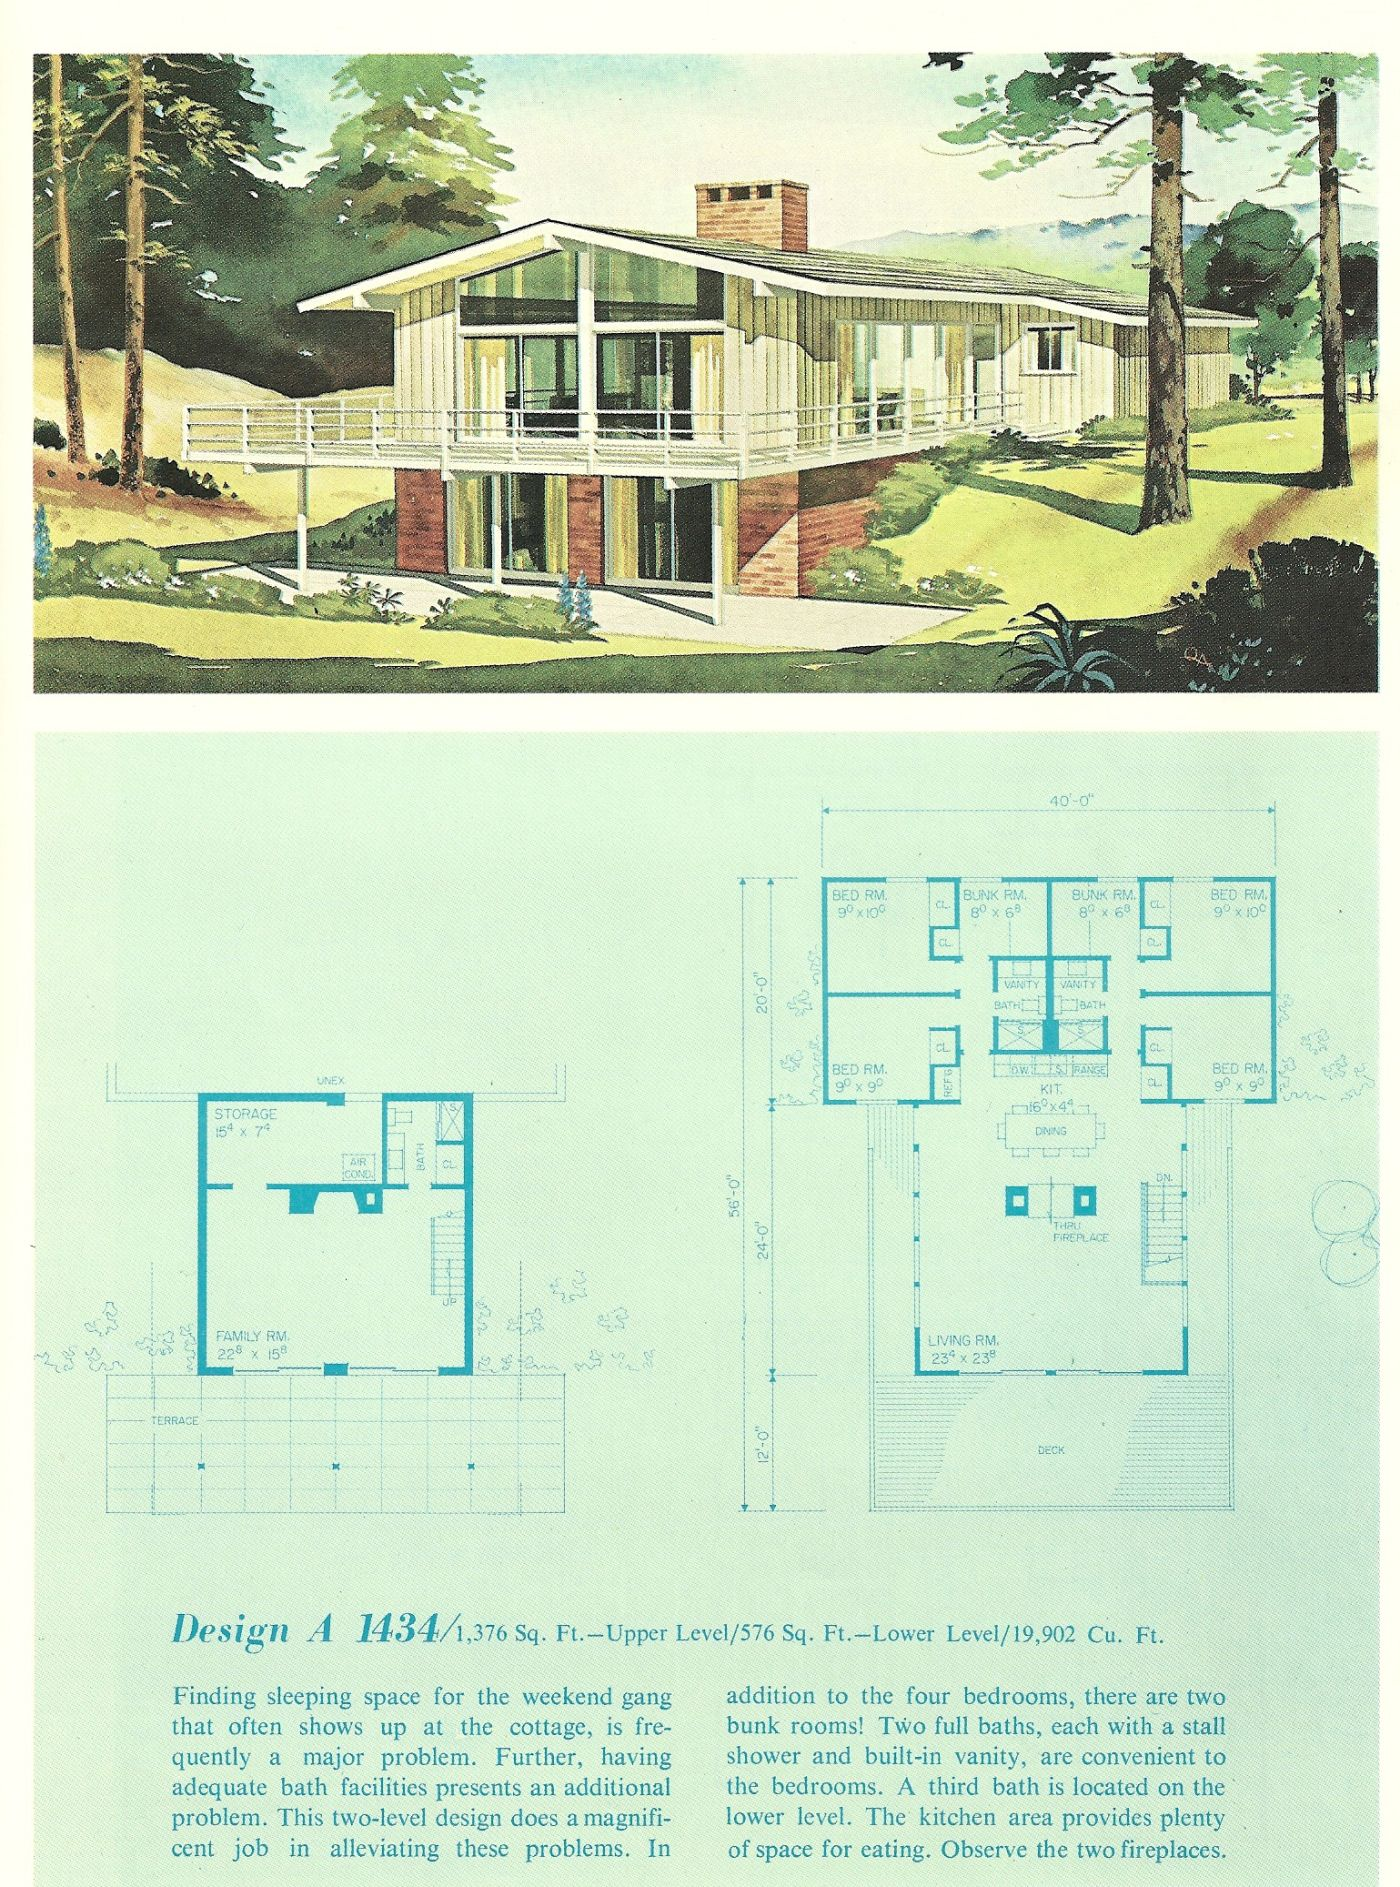 Vintage Vacation House Plans 1960s Vacation Homes Vacation House Plans Vintage House Plans Vintage House